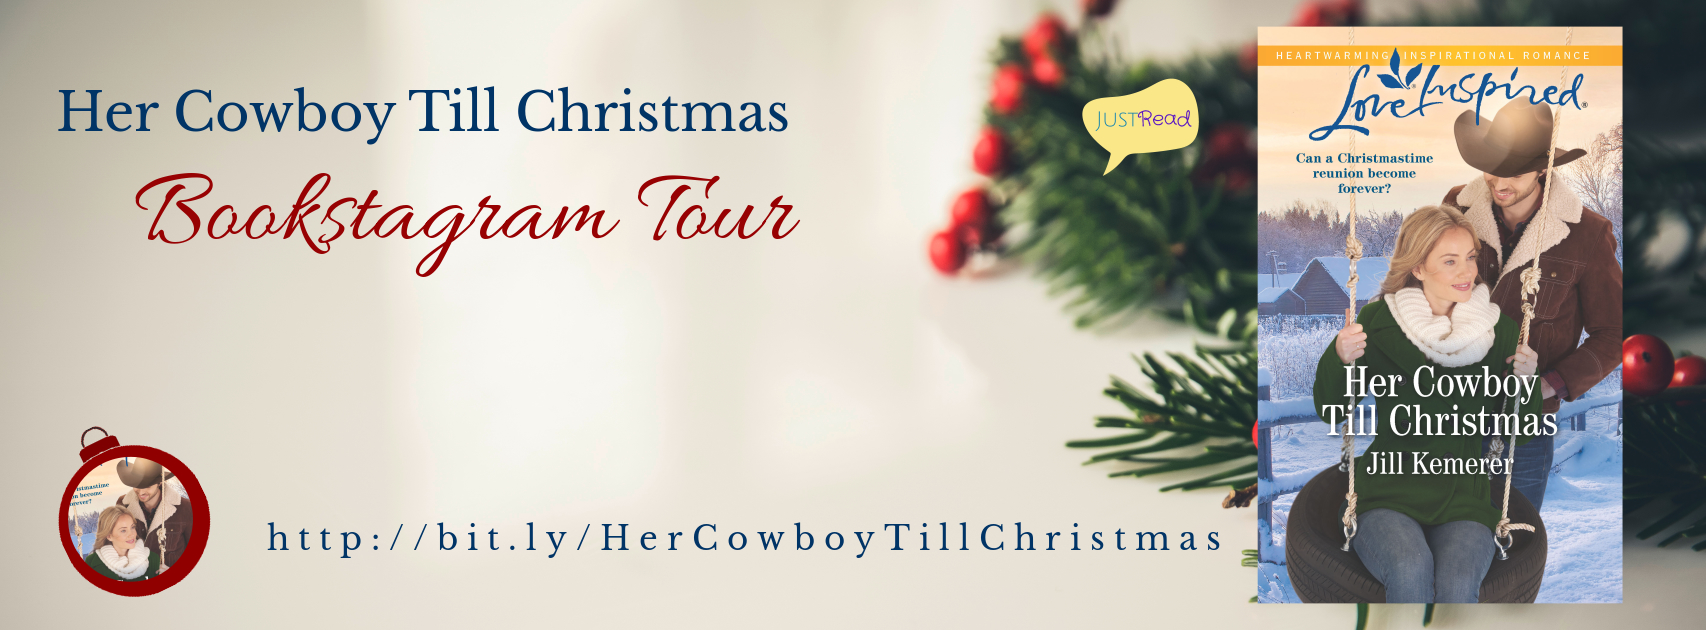 Welcome to the Her Cowboy Till Christmas IG Blitz & Giveaway!